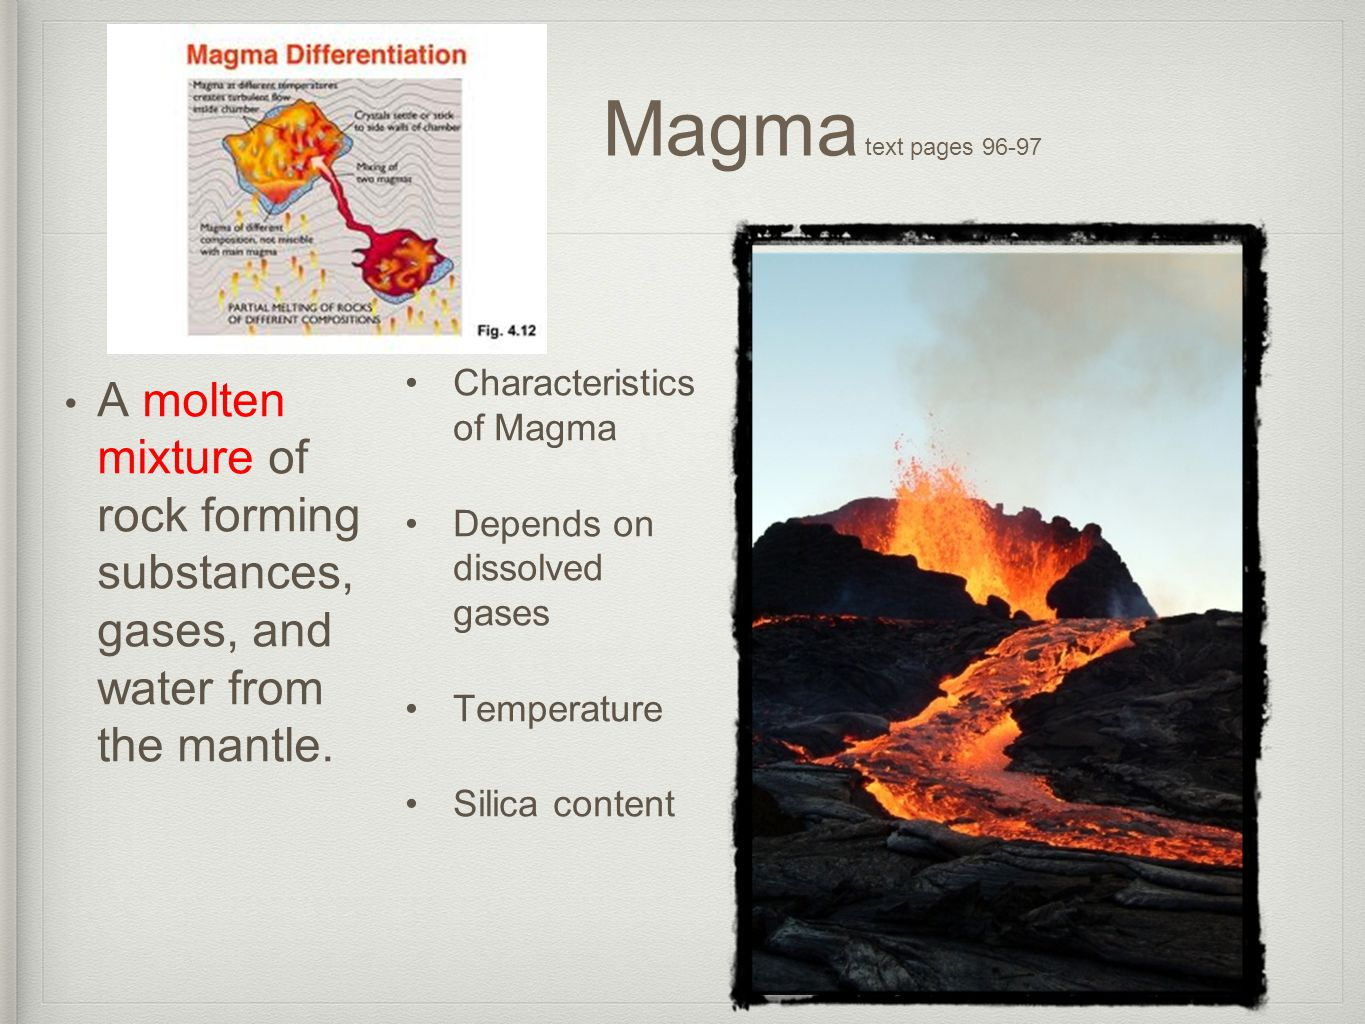 M Magma text pages 96-97 A molten mixture of rock forming substances, gases, and water from the mantle. Characteristics of Magma Depends on dissolved